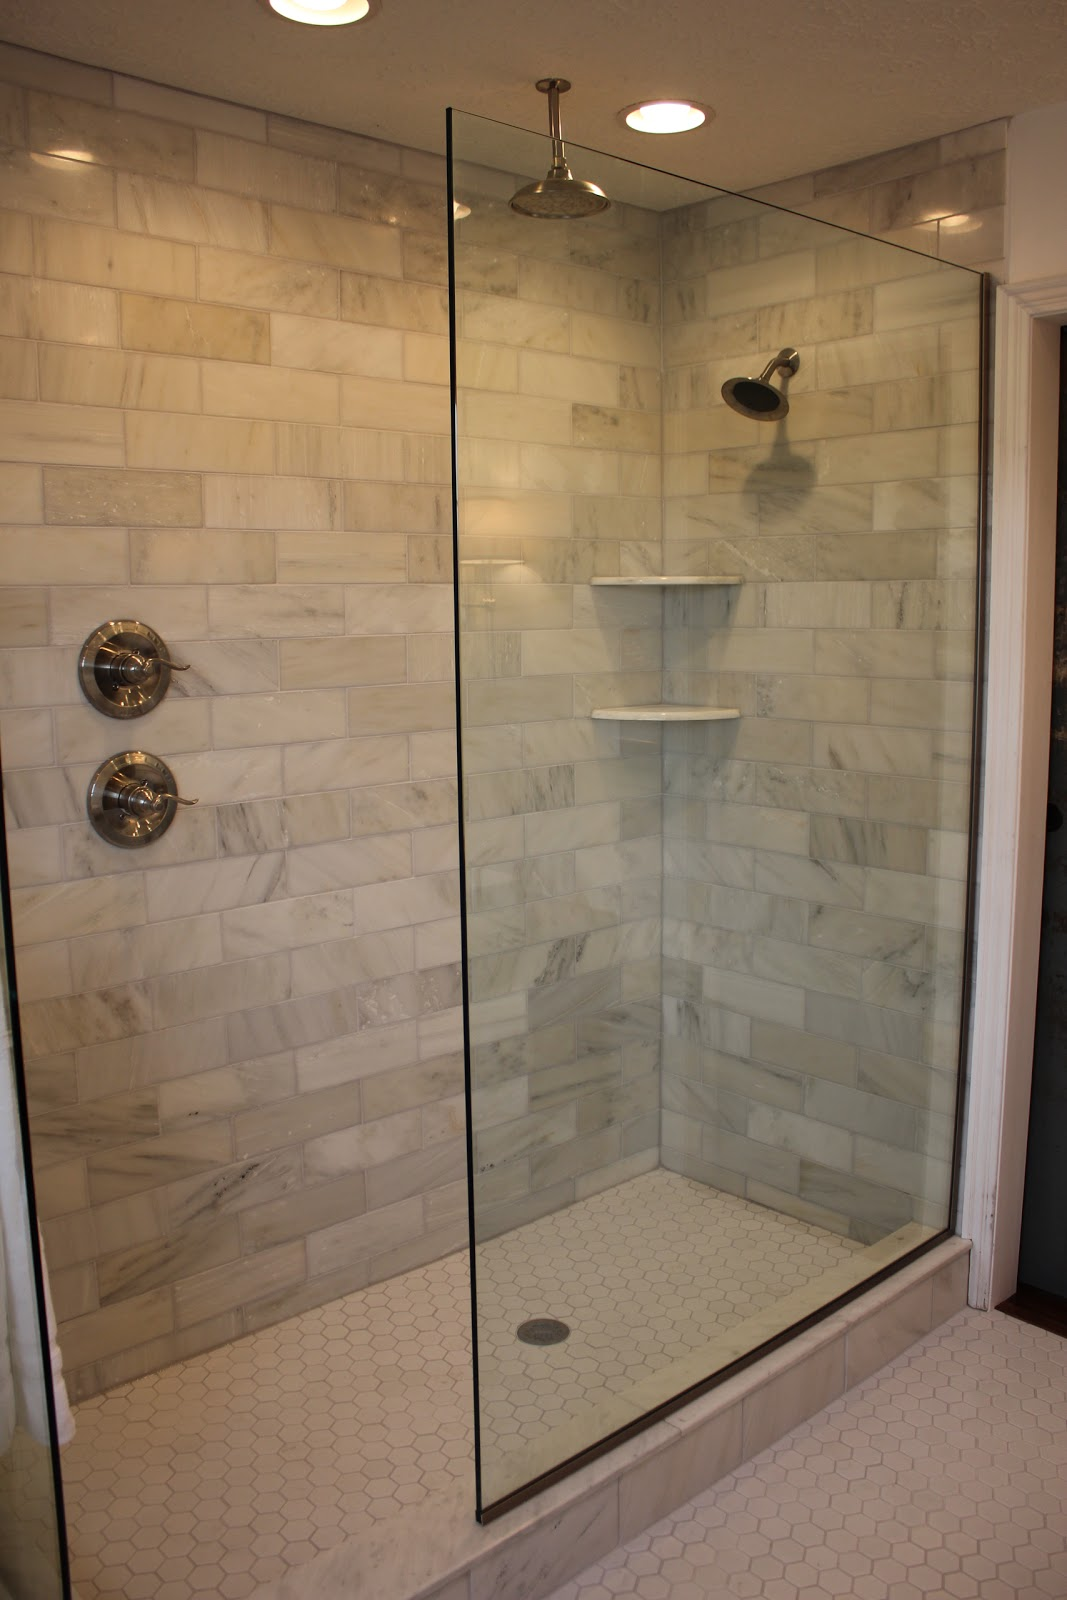 Design decor and remodel projects january 2013 for Bathroom wall tile designs photos